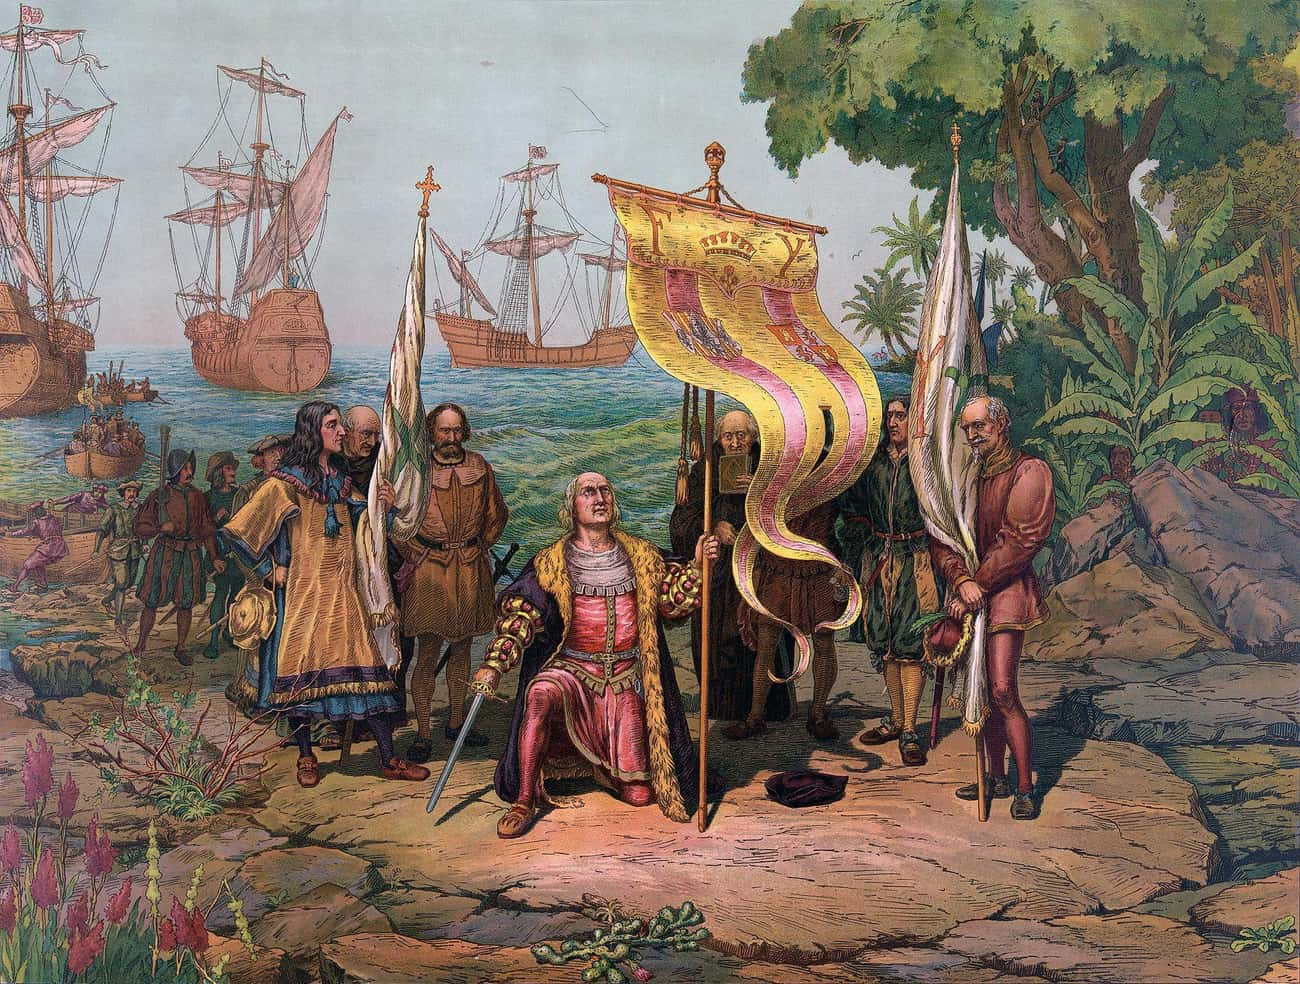 Some Other Explorer Would Have Run Into The Americas, Only Delaying The Same Inevitable Outcomes